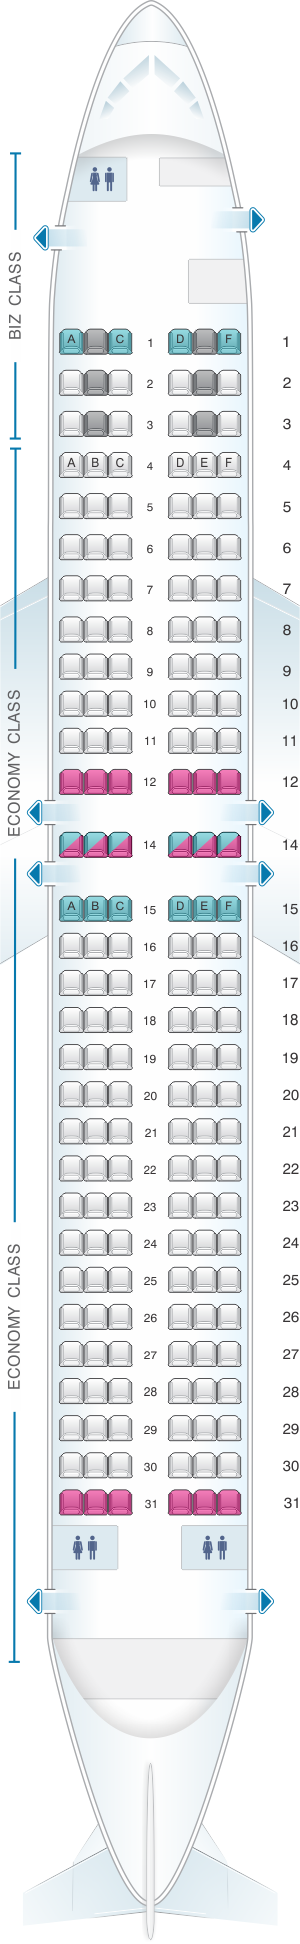 Seat map for Eurowings Boeing B737 800